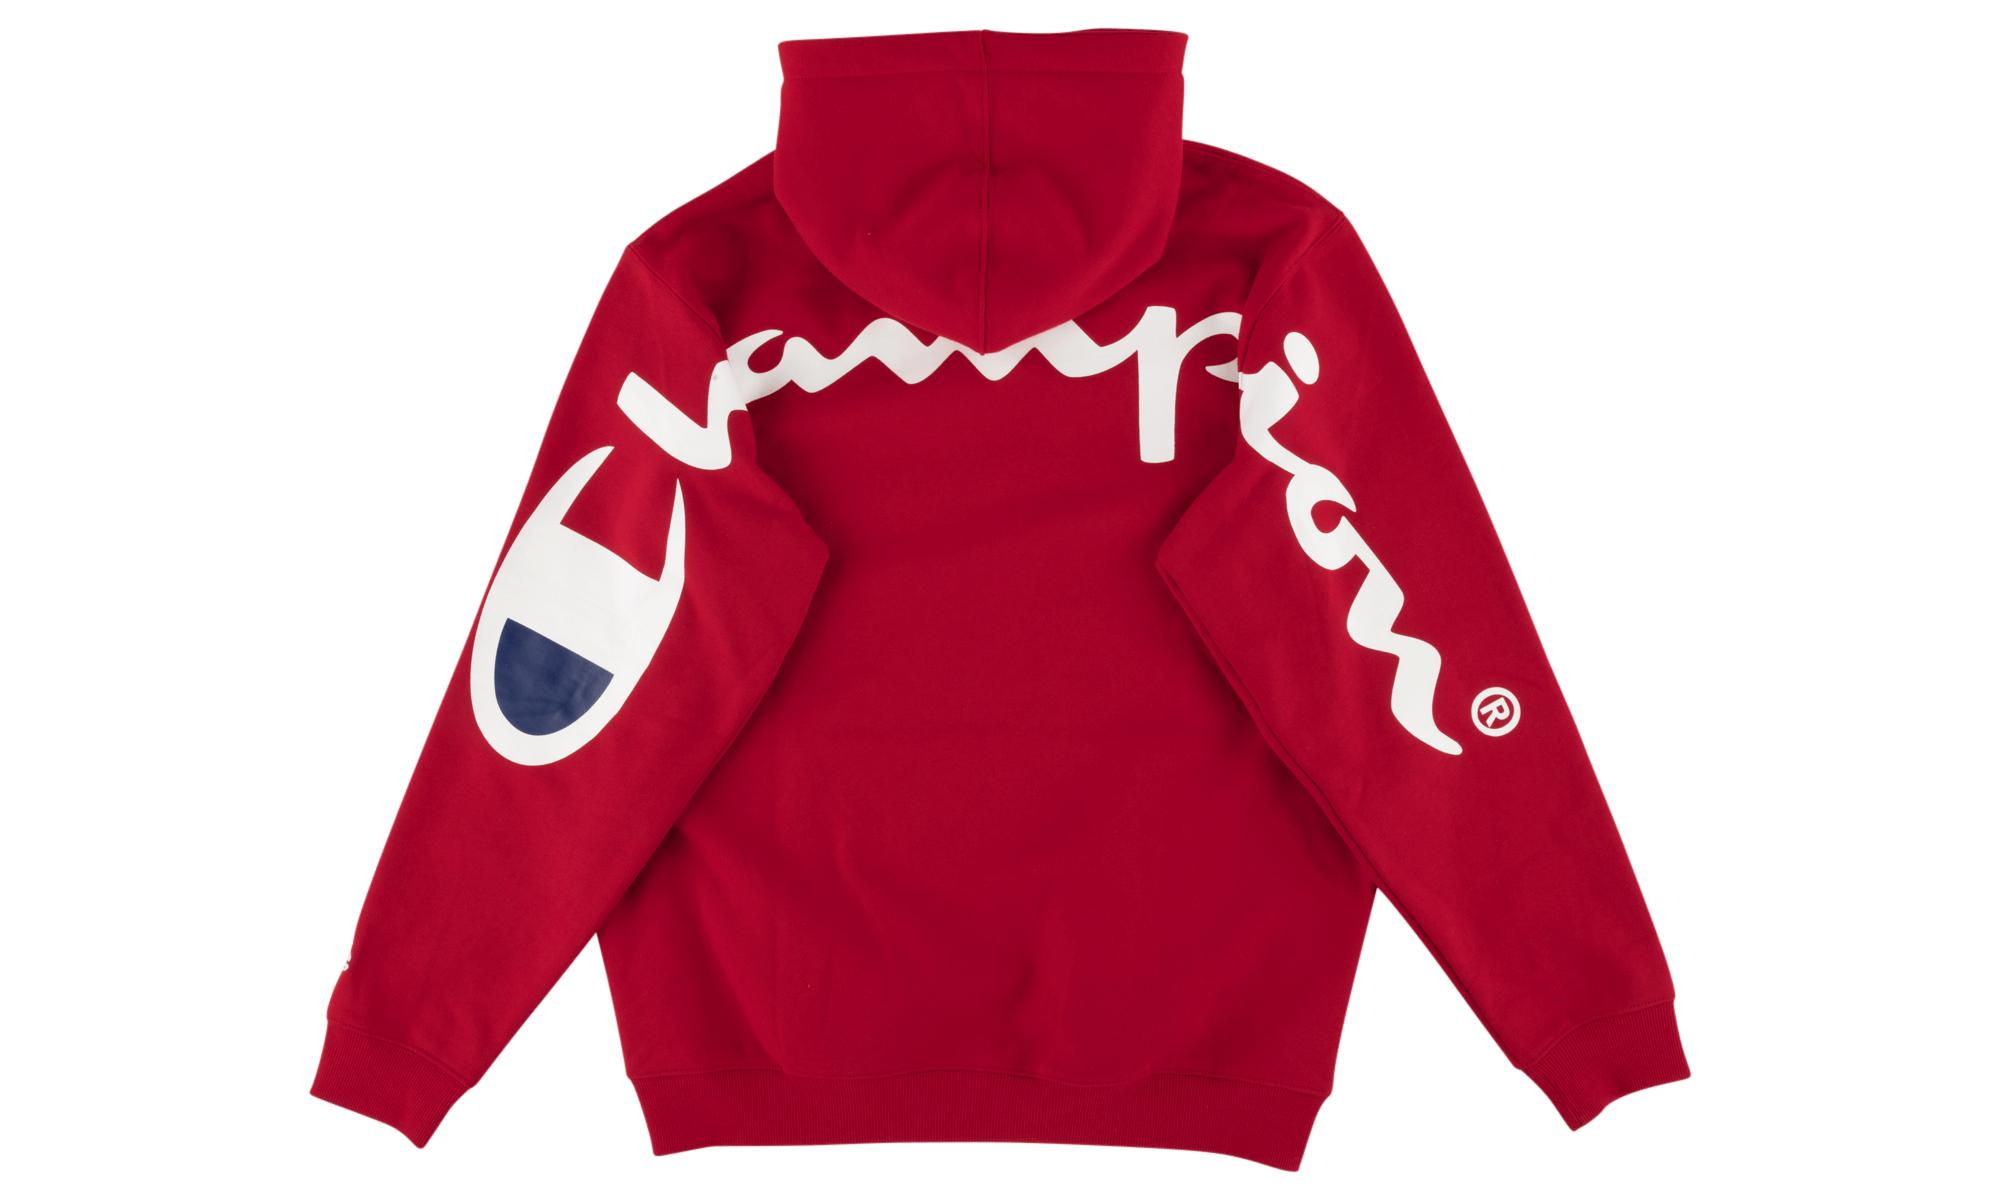 cf4e40d04fb3 Lyst - Supreme Champion Hooded Sweatshirt in Red for Men